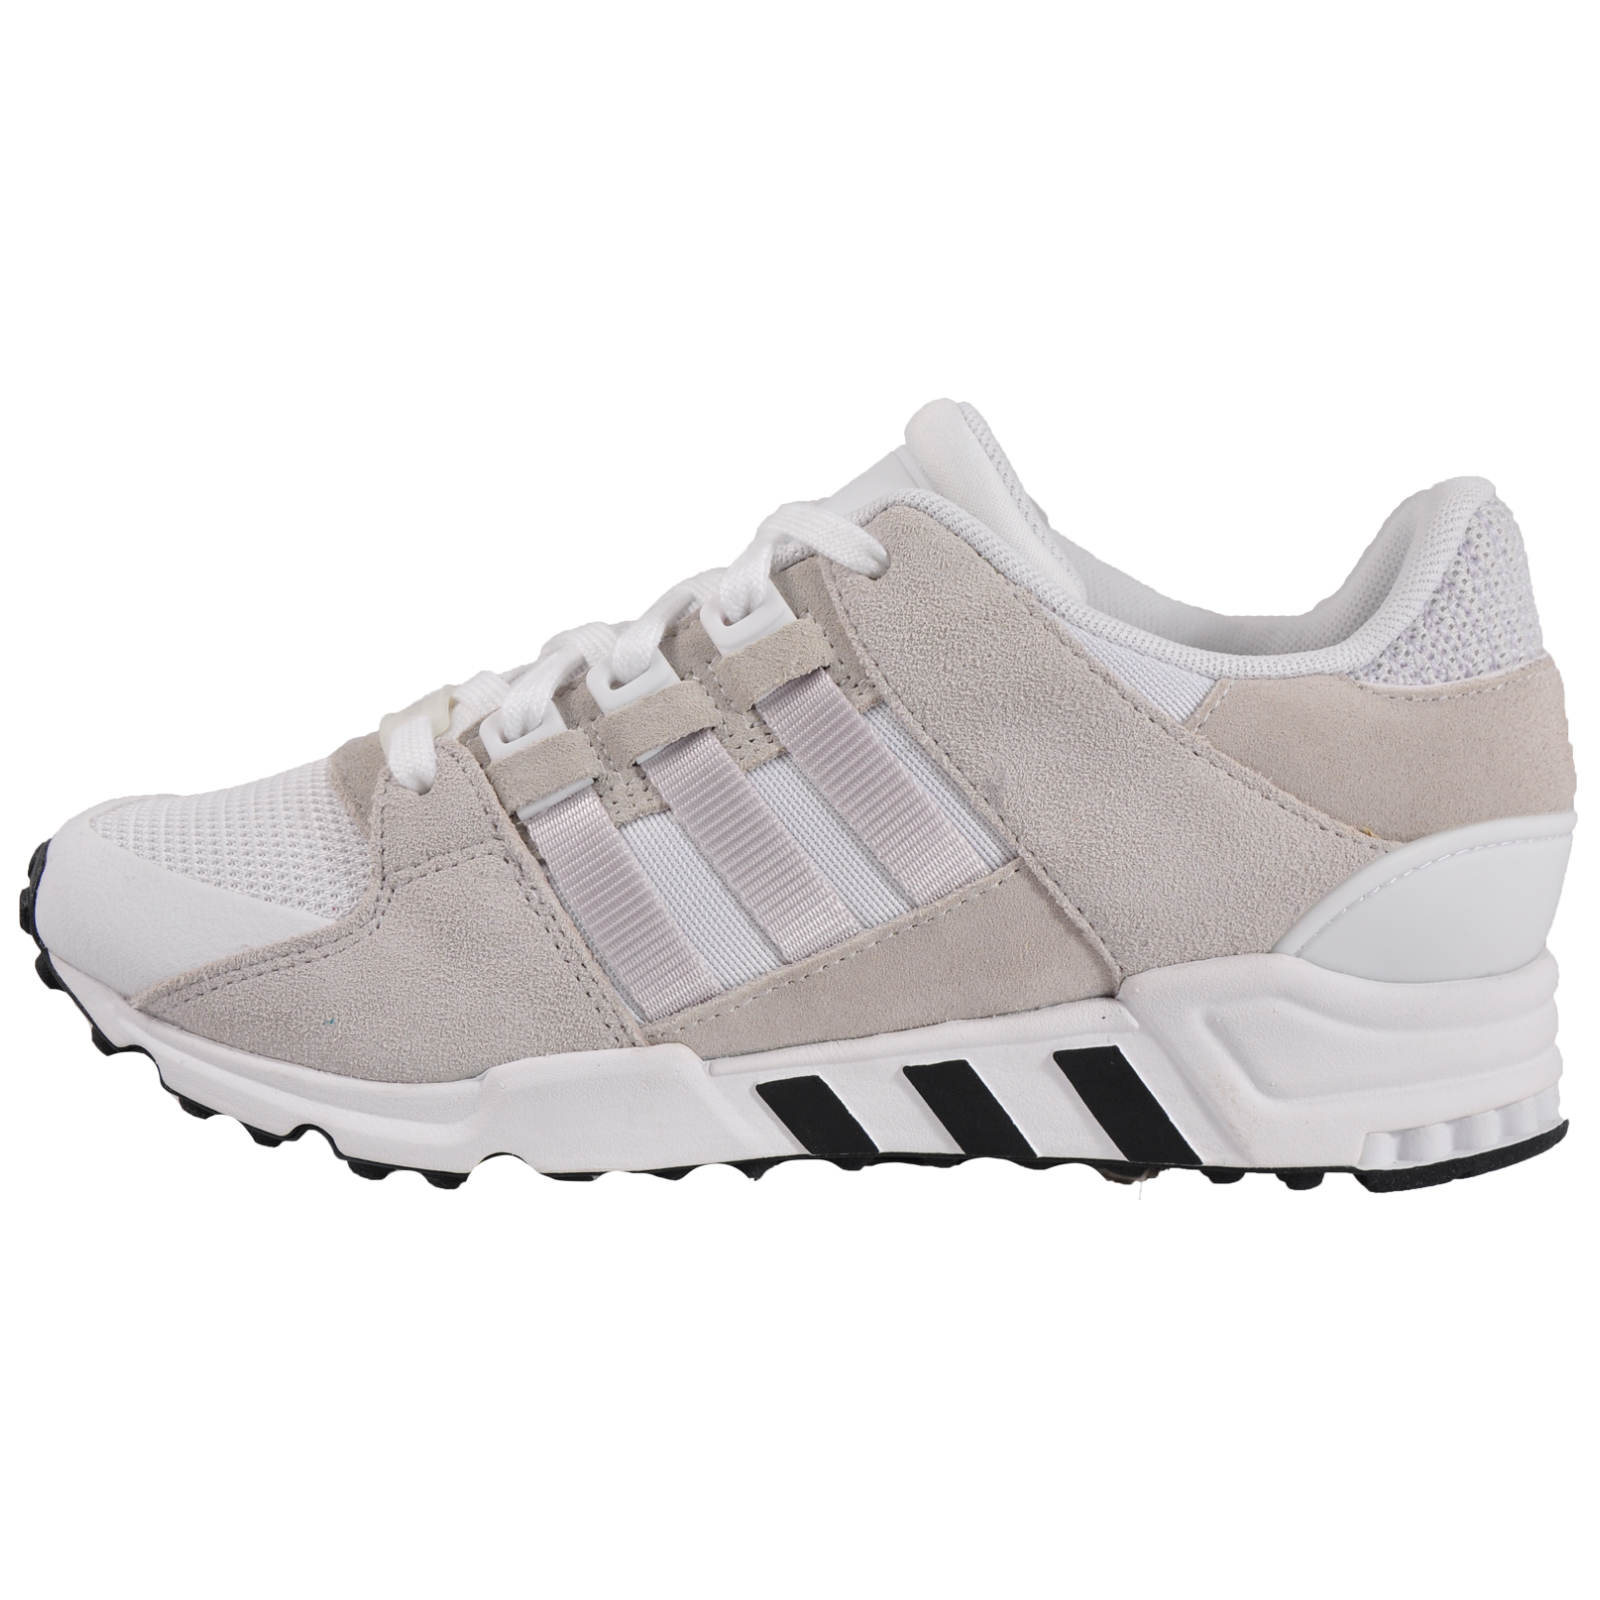 first look running shoes official images Details about Adidas Originals Equipment Support RF Mens Classic Casual  Retro Trainers White